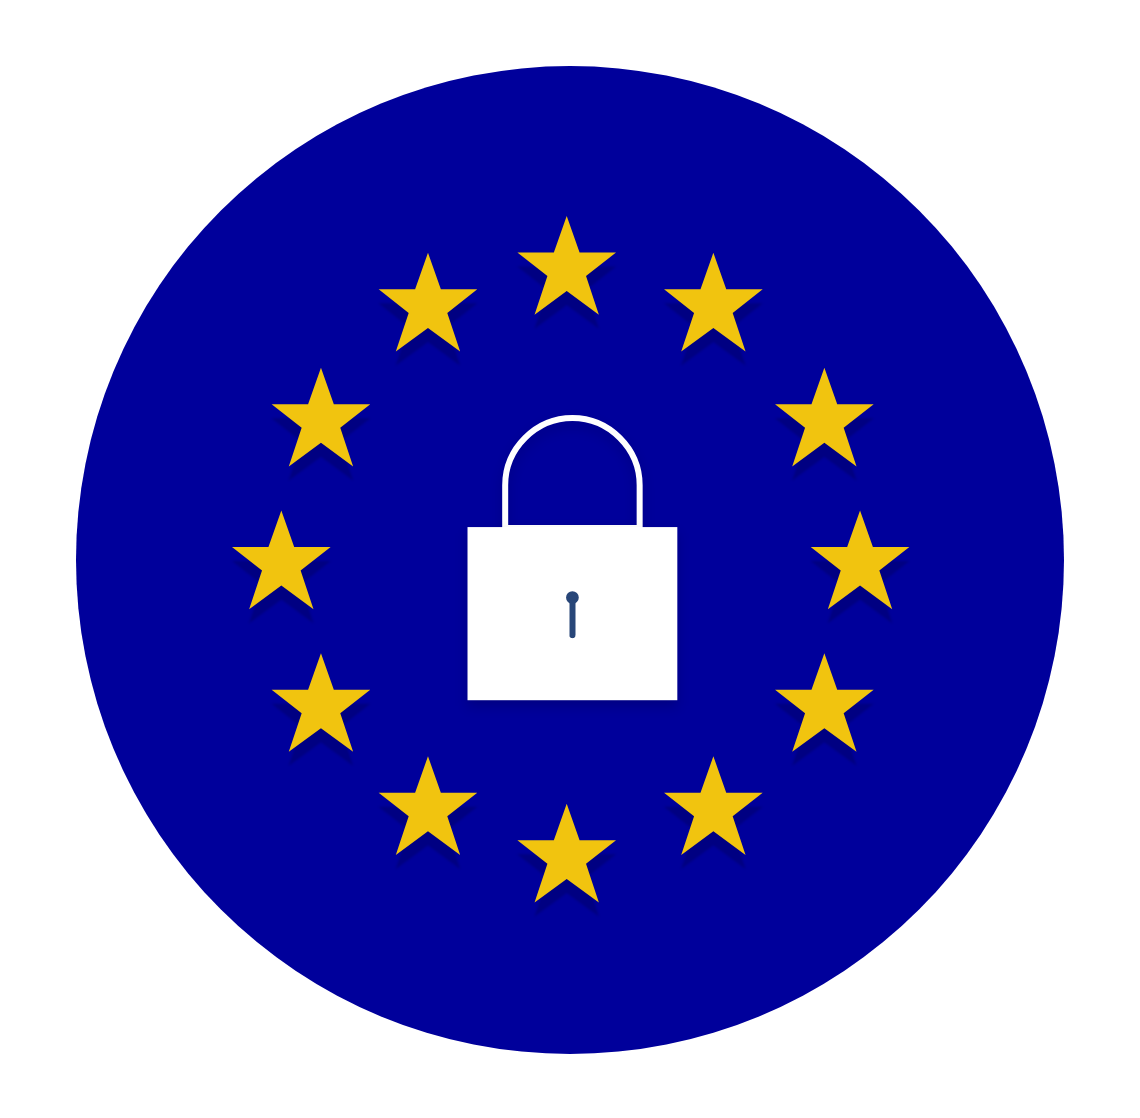 With the Conversant and CJ Affiliate Consent Tool, you can request GDPR and ePD compliant consent for digital advertising